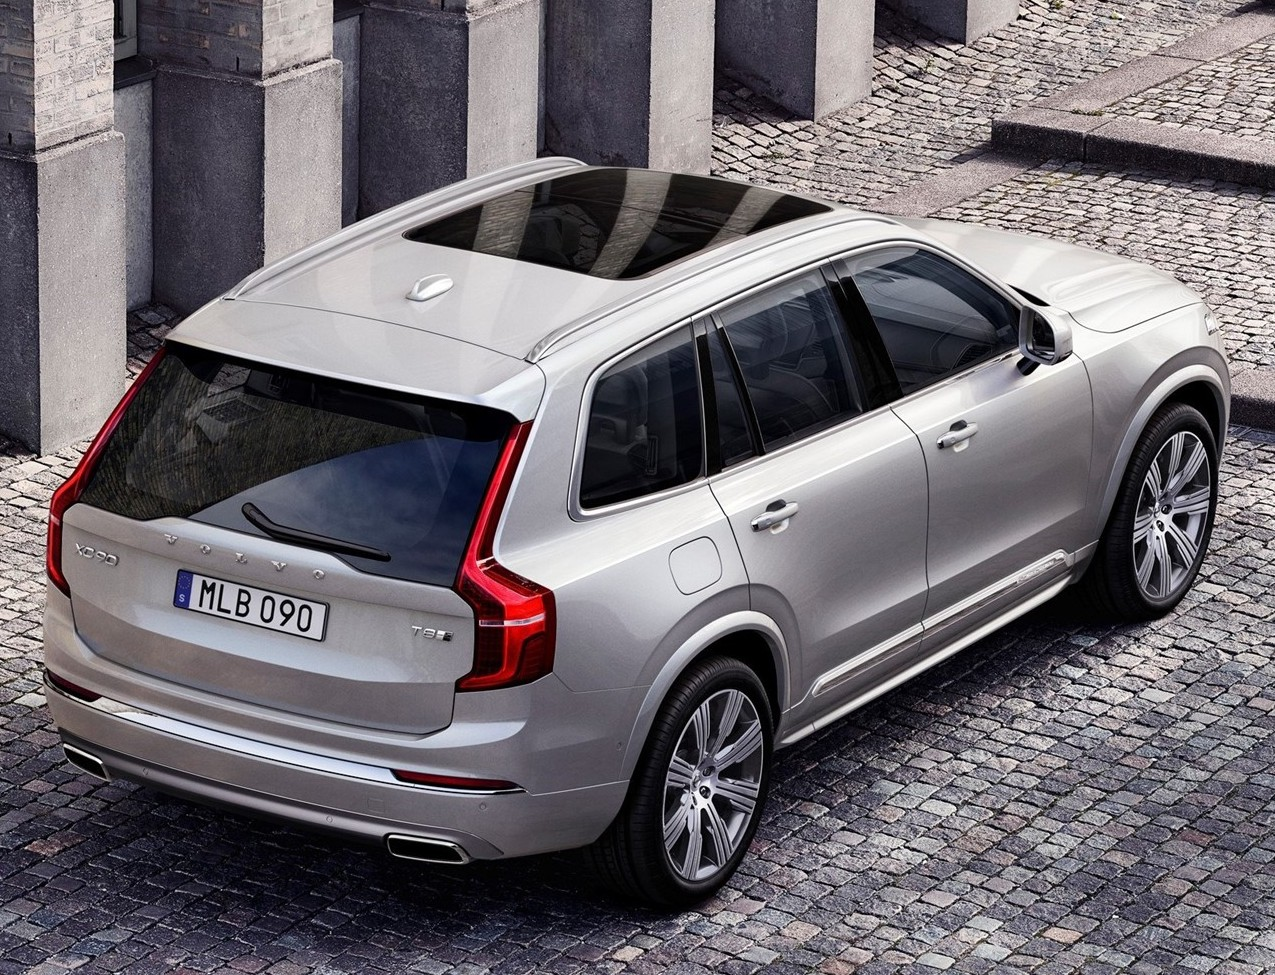 Volvo XC90 SUV Gets F1-Style KERS Braking System – 6th Gear